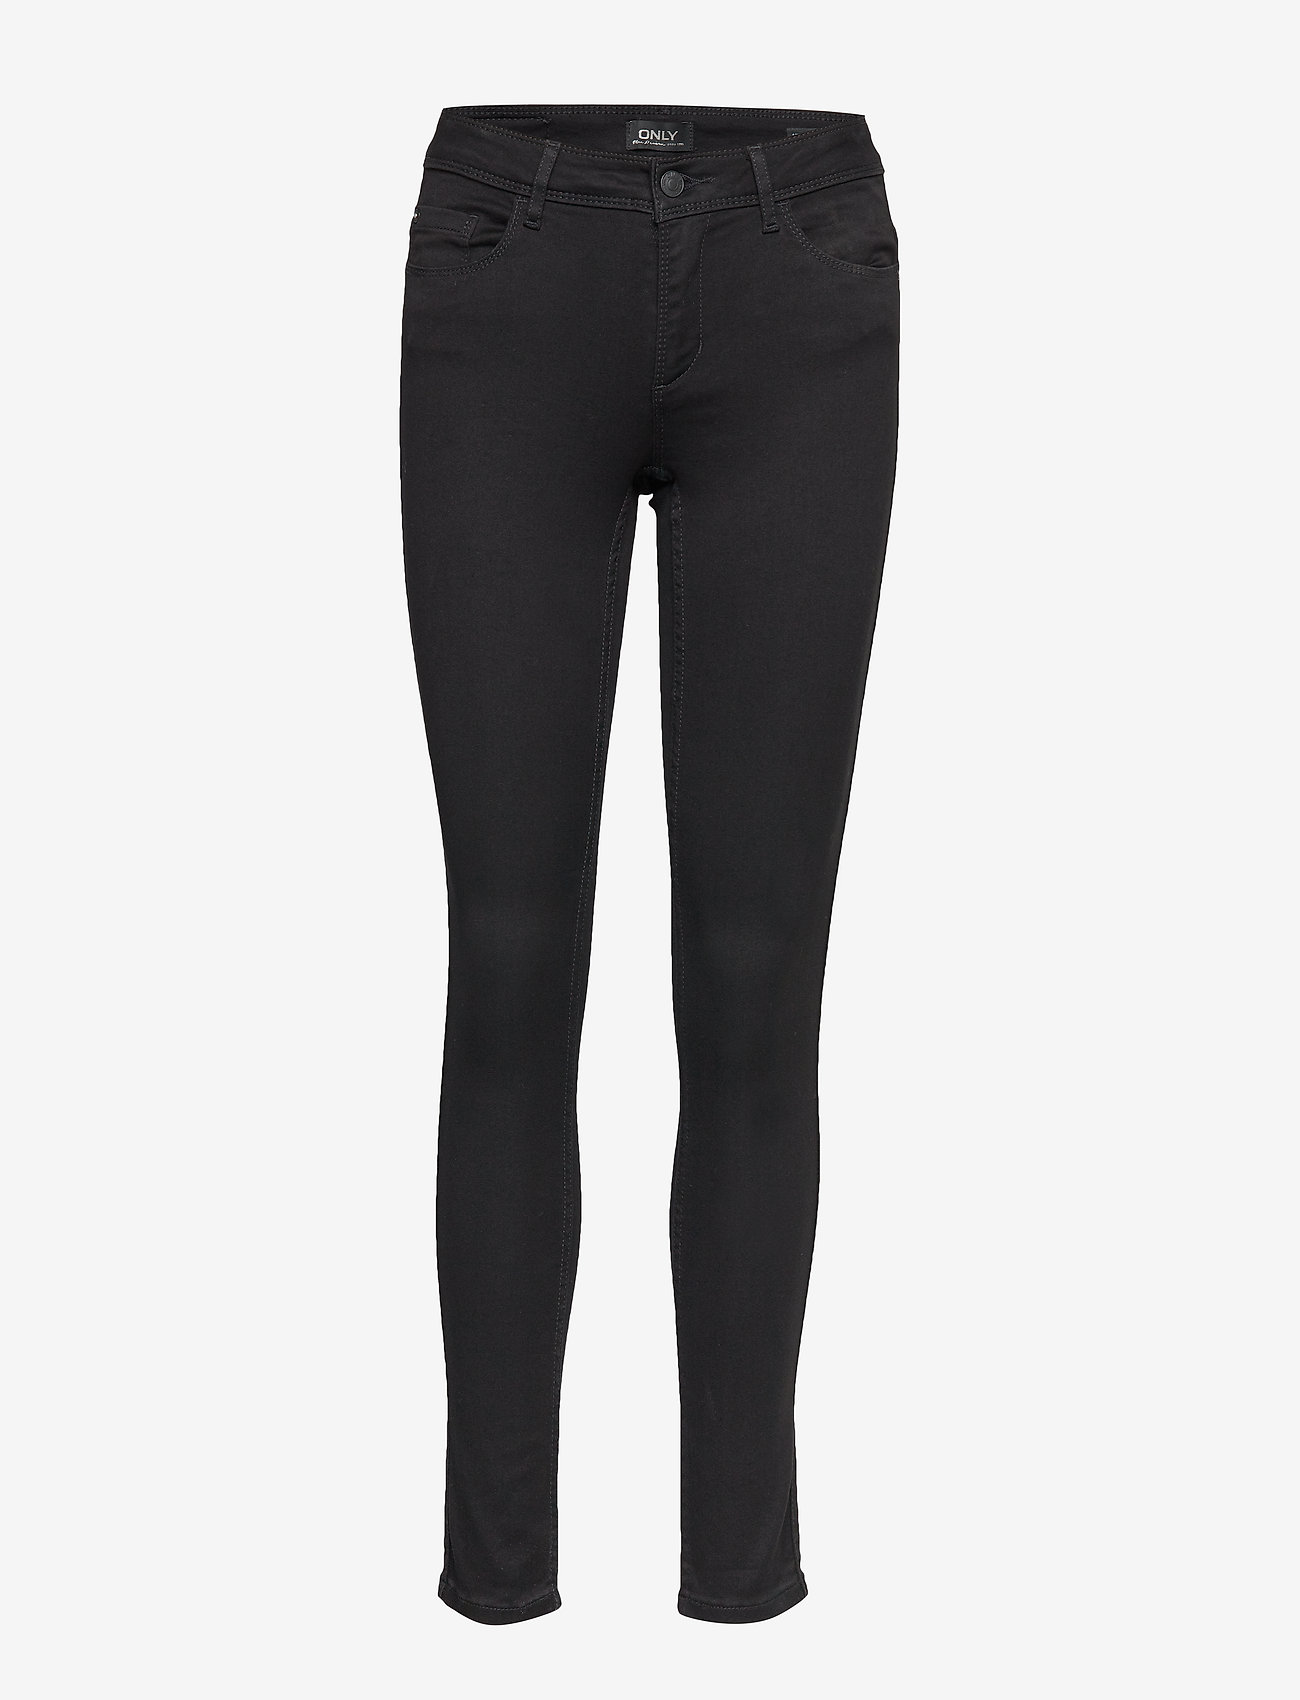 ONLY - onlULTIMATE KING REG JEANS CRY100 NOOS - skinny jeans - black denim - 0